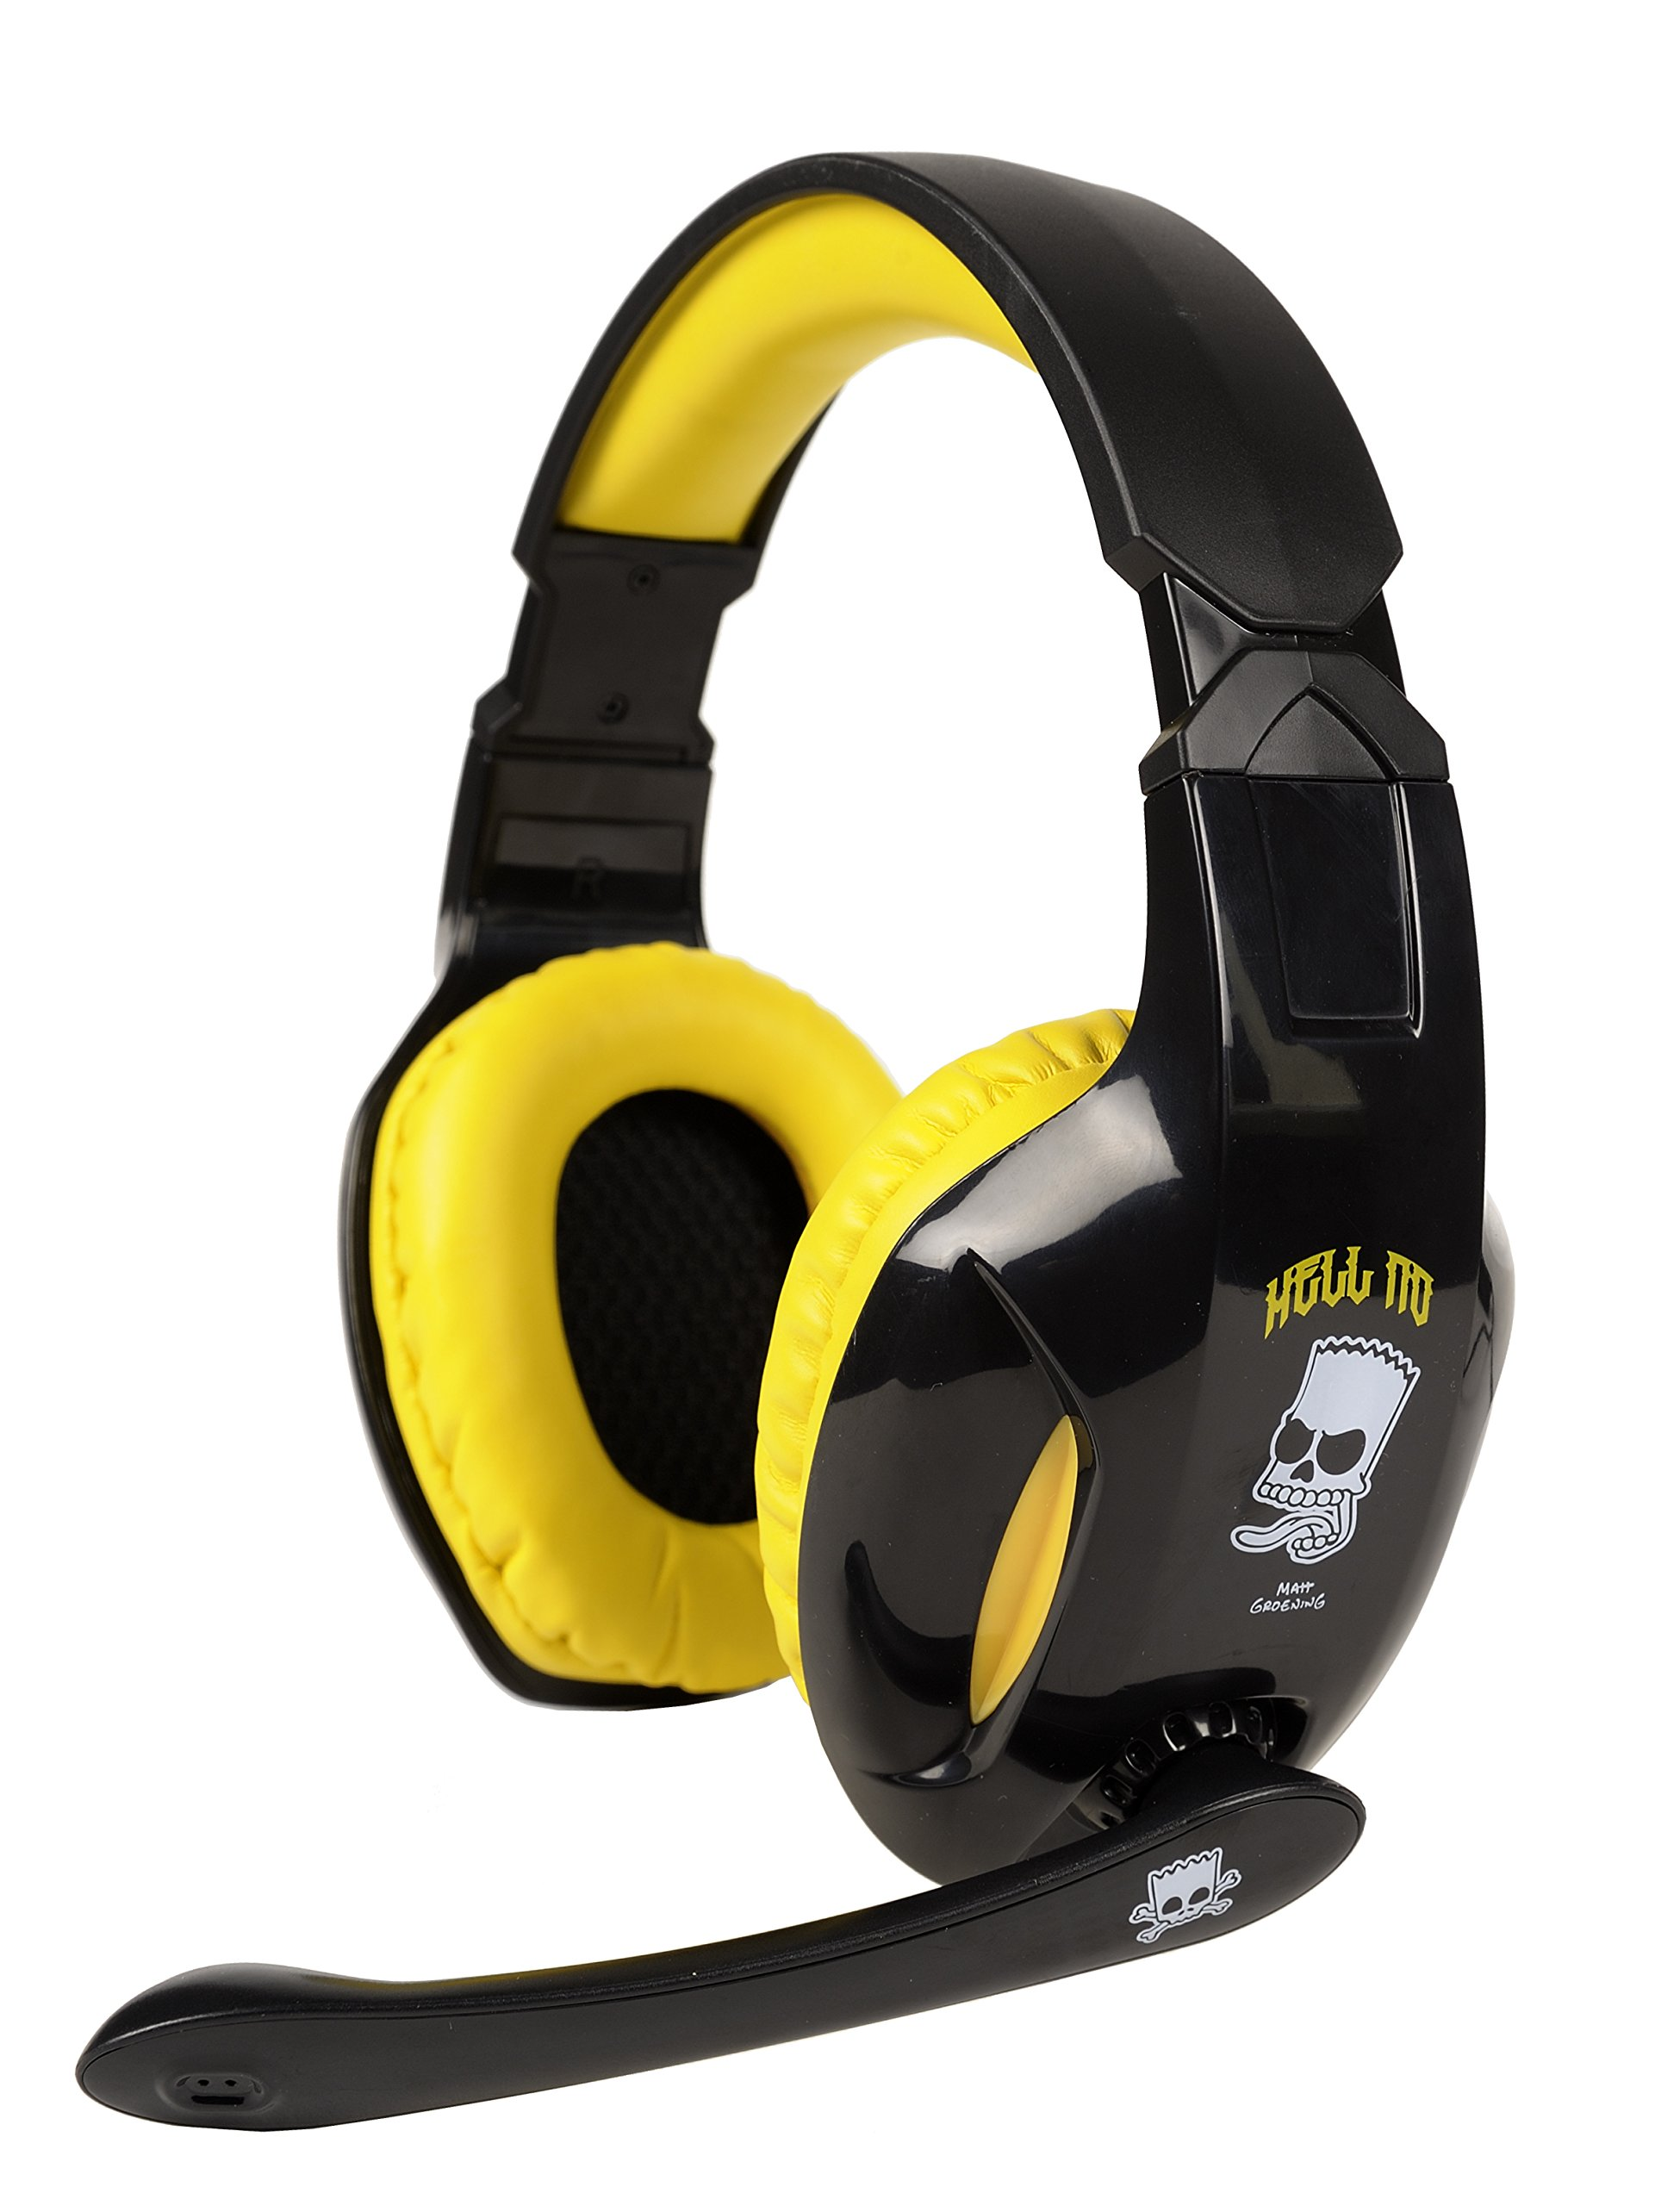 81gjbjSM9TL - Indeca - Auriculares The Simpsons 2015 (PlayStation 4)